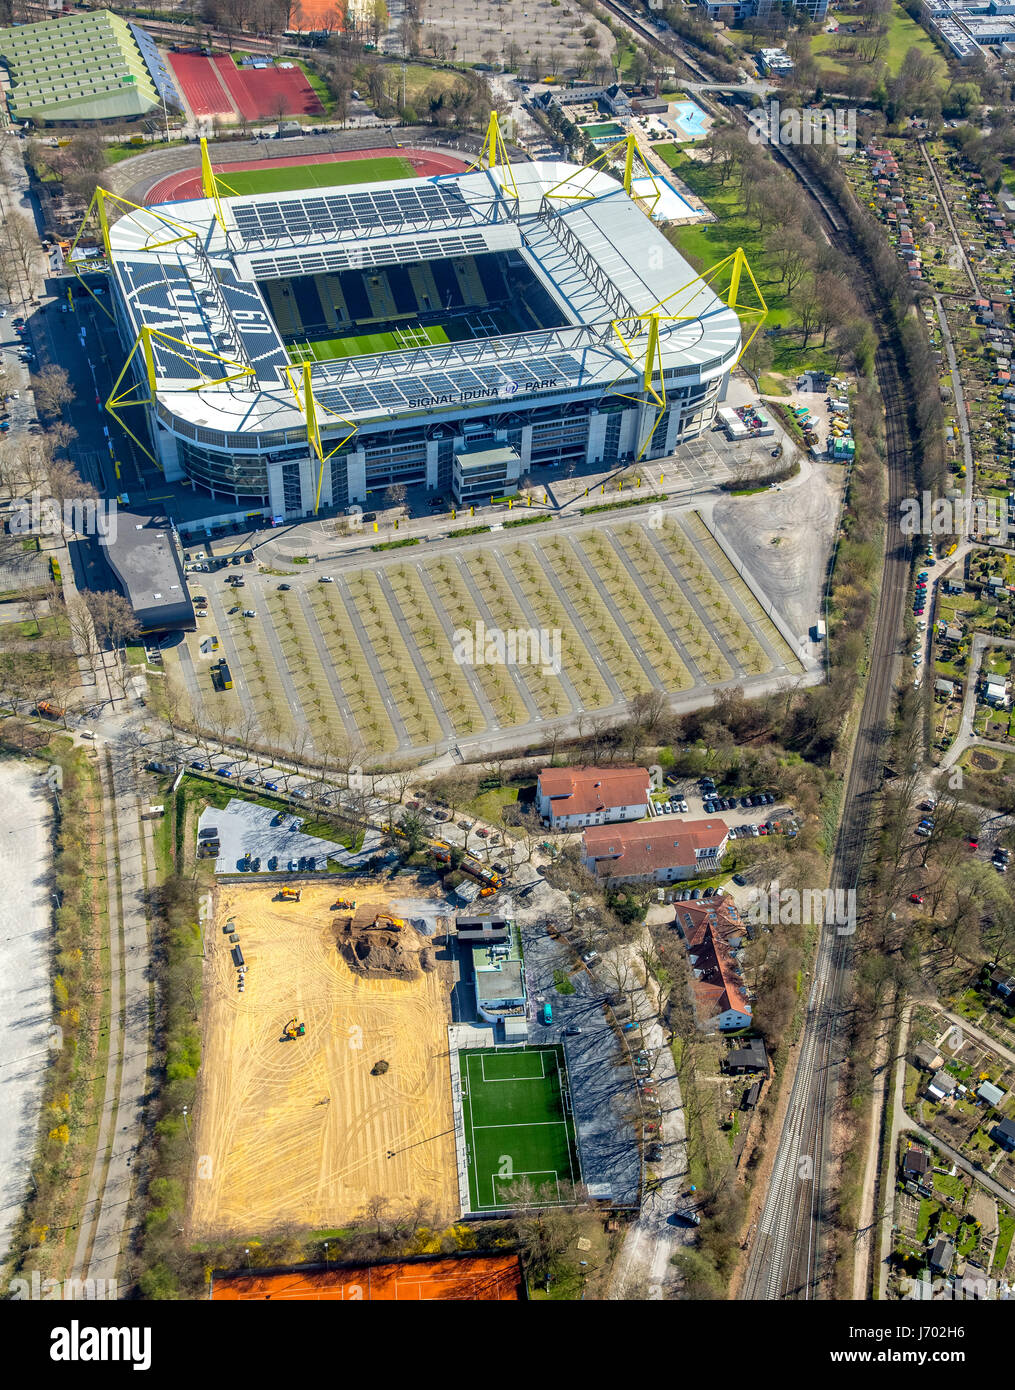 Evonik football school, BVB Dortmund training center at Signal Iduna Park, Westfalenstadion, Dortmund, Ruhr area, - Stock Image